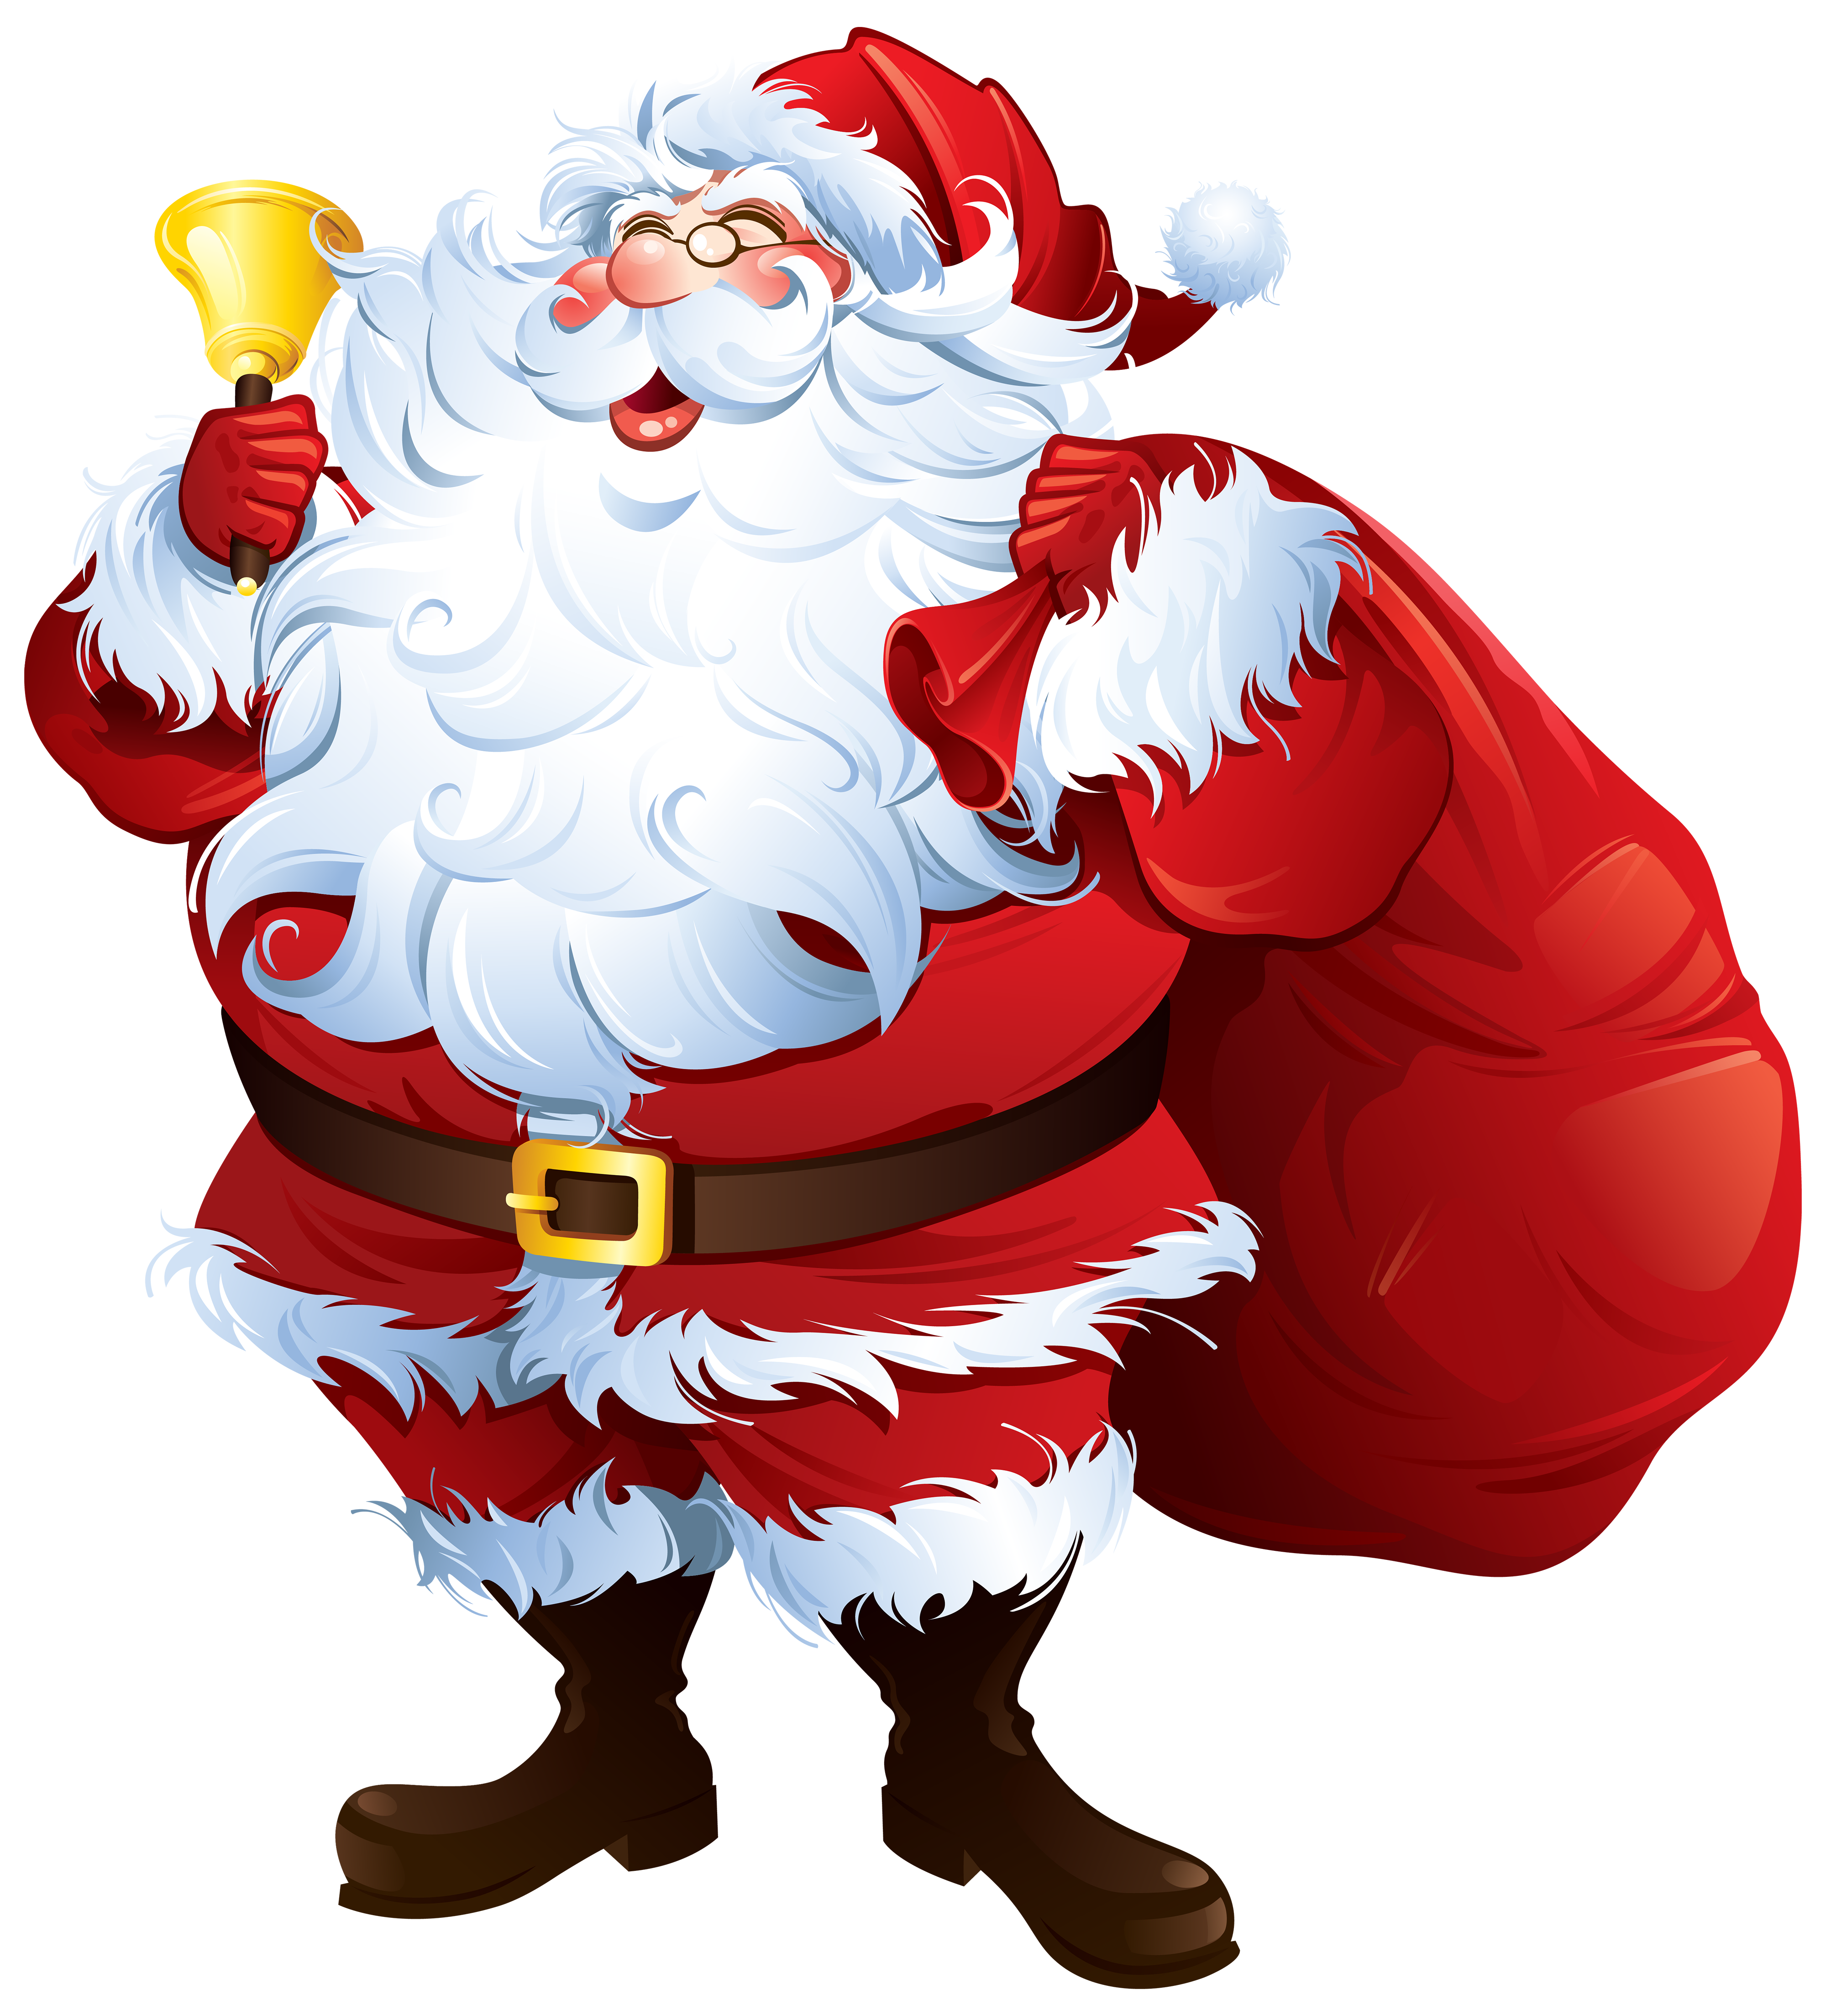 Claus with bell and. Clipart santa hand